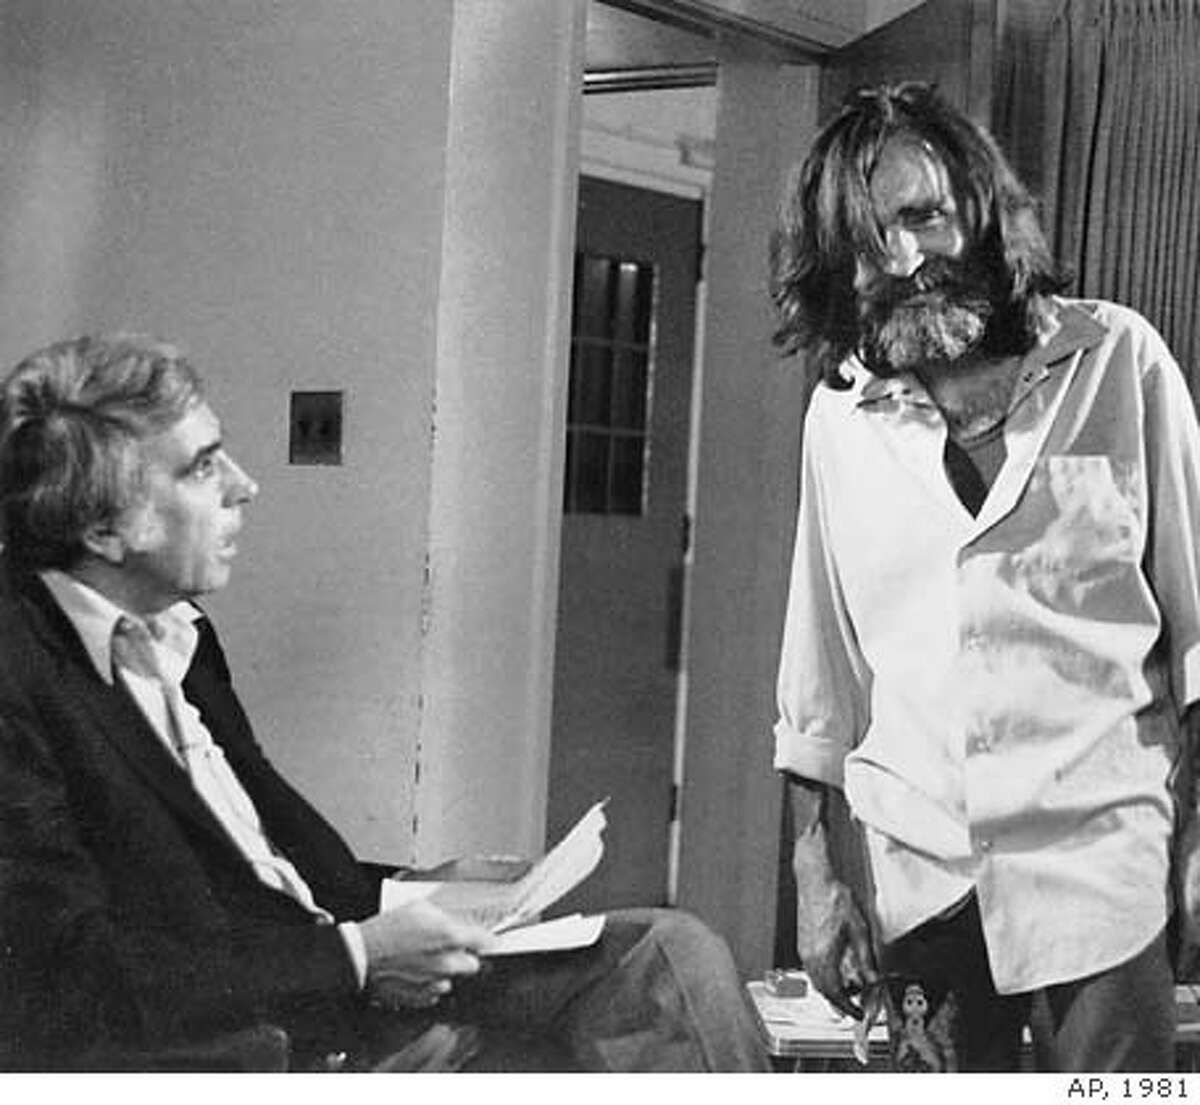 This June 1981 file photo shows talk show host Tom Snyder,left, getting ready to interview convicted murderer Charles Manson at the California Medical Facility in Vaccaville. Snyder died Sunday, July 29, 2007, in San Francisco from complications associated with leukemia, his longtime producer and friend Mike Horowicz told The Associated Press on Monday.(AP Photo) NO SALES,A JUNE 1981 B&W FILE PHOTO